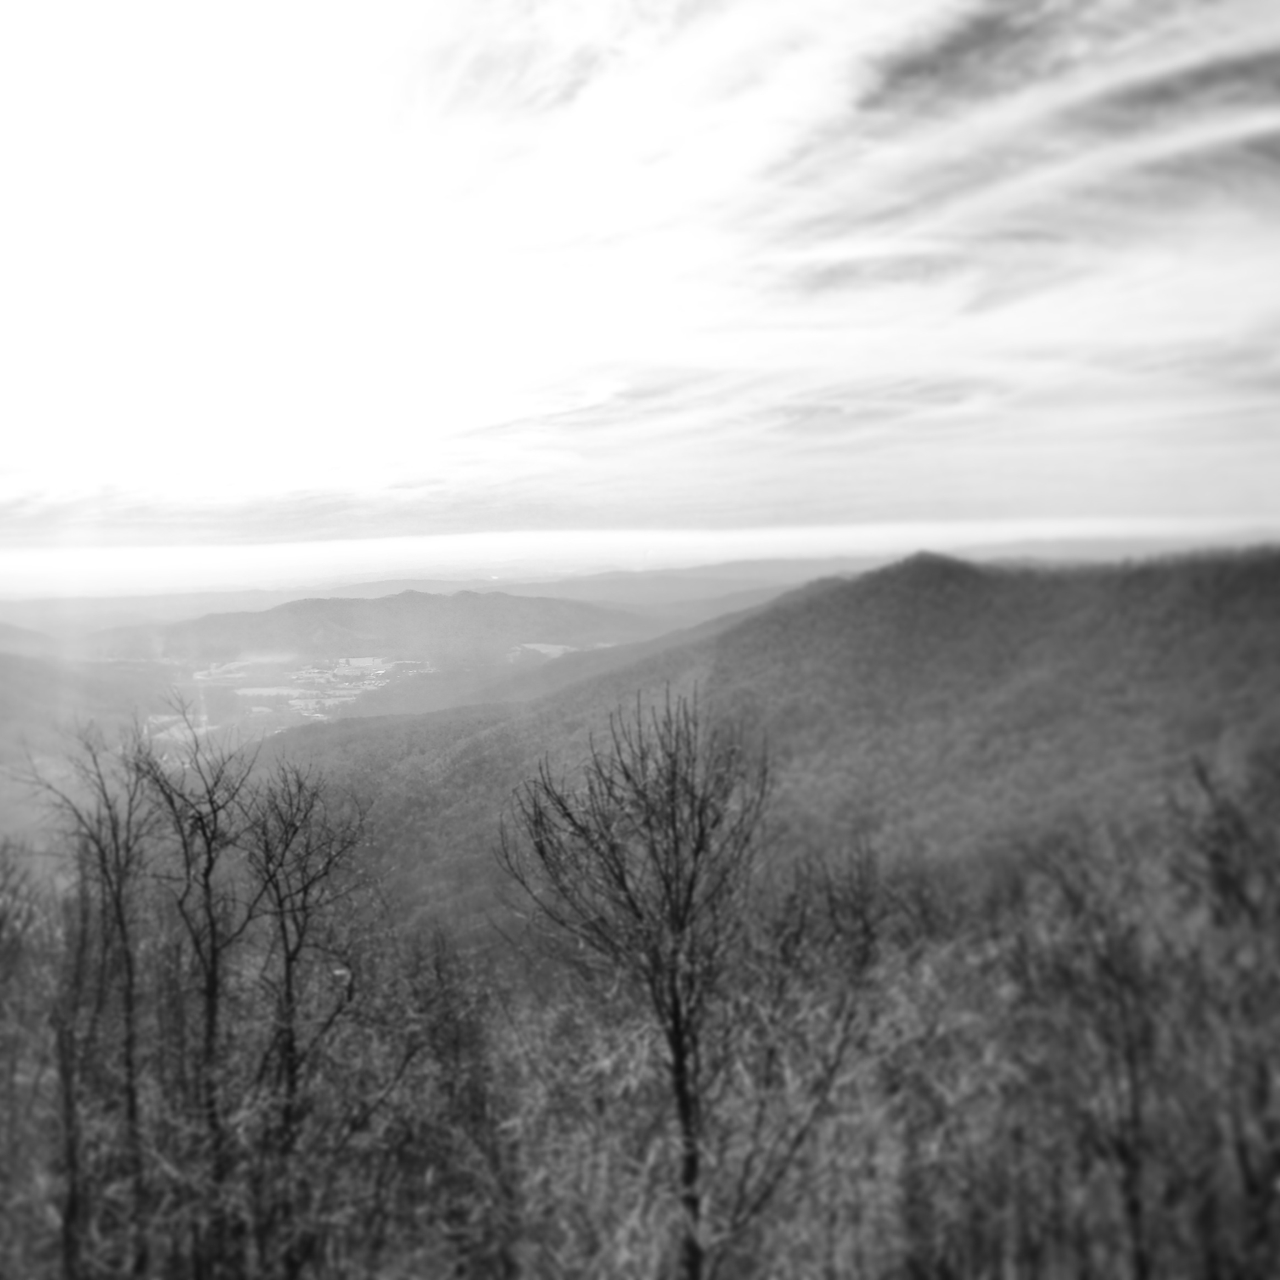 I took this photo from Frozen Head Natural Area in Wartburg, TN on 1-5-13.  The valley below shows the town of Coalfield.